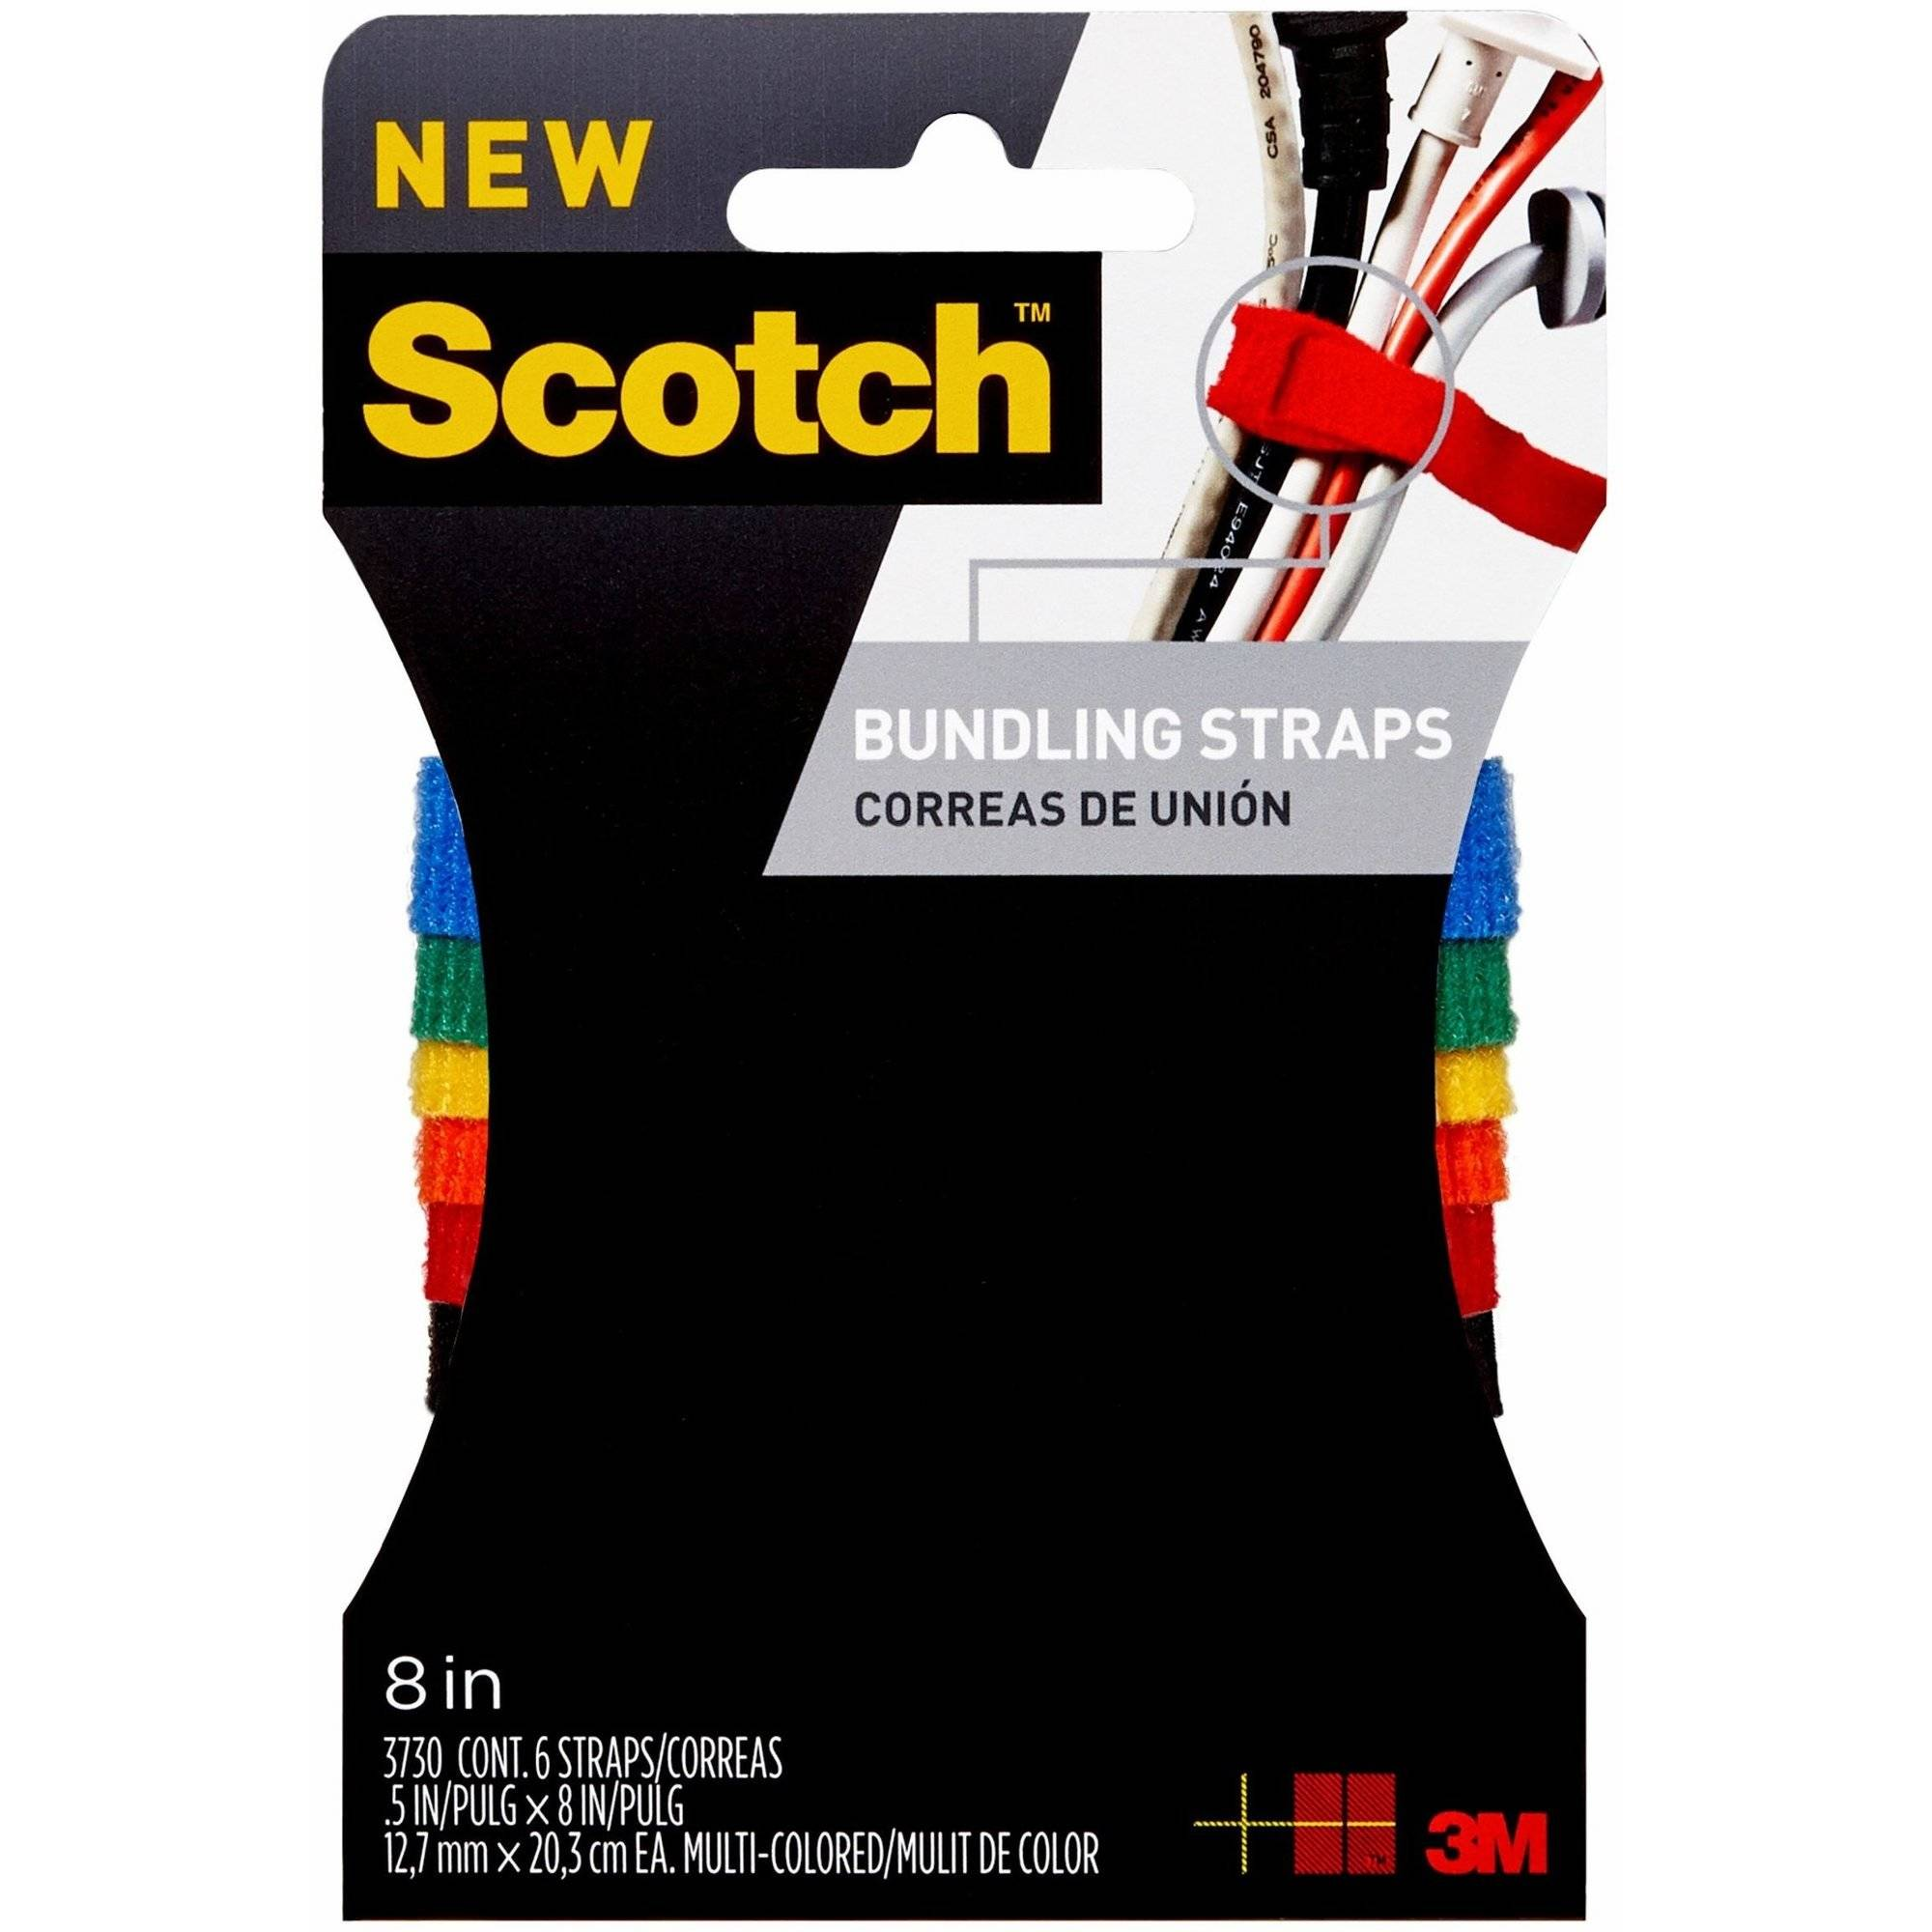 Scotch Bundling Strap, 0.5 in. x 8 i.n, Assorted Colors, 6/Pack